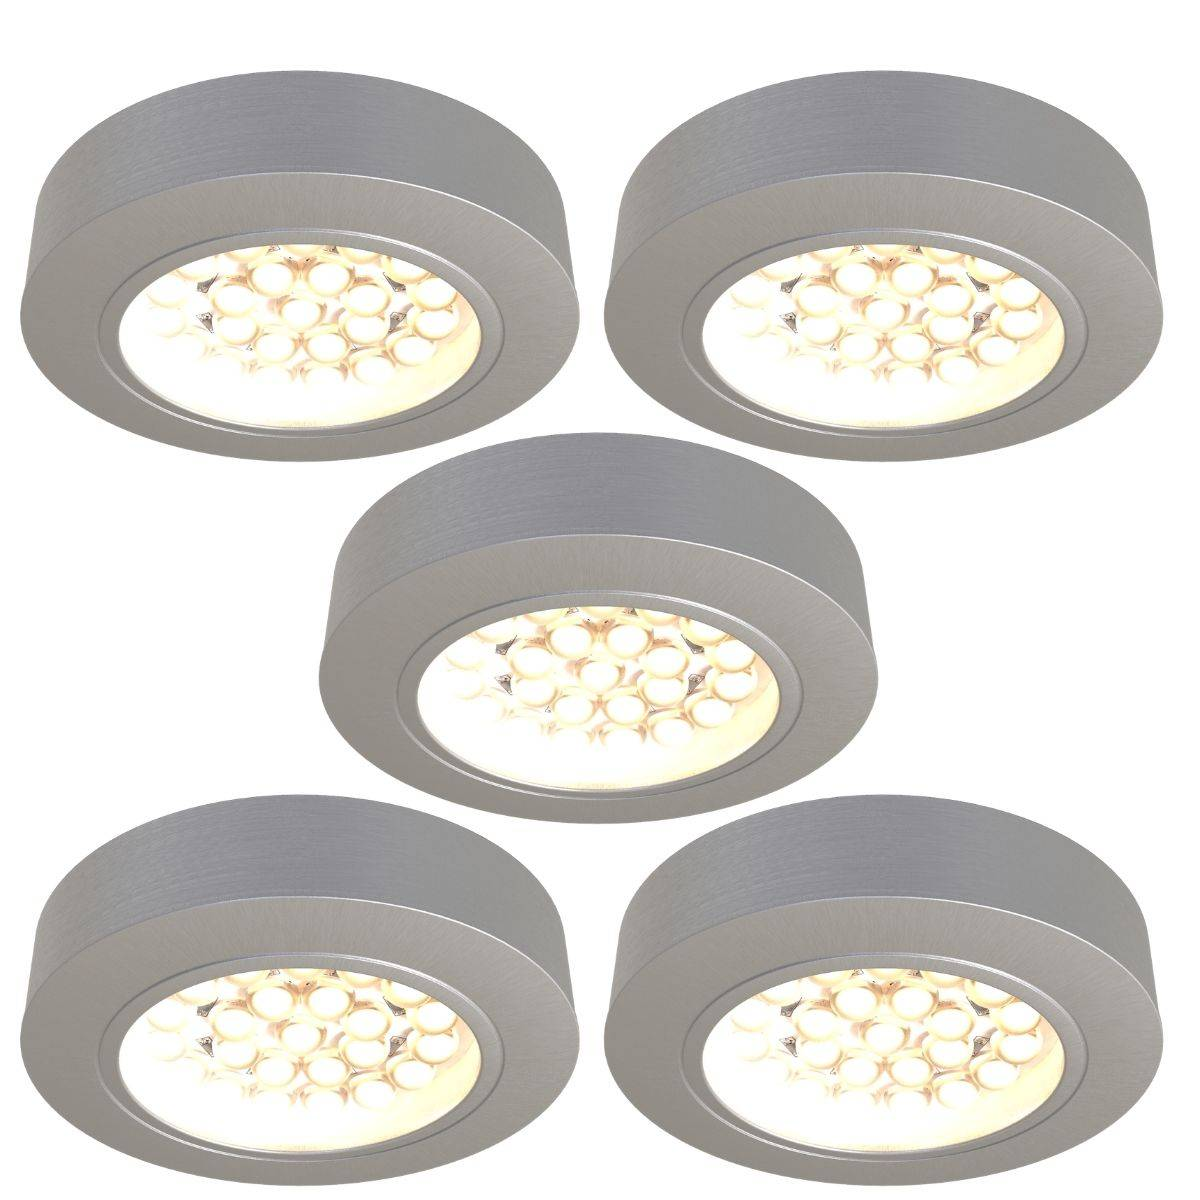 Simple Lighting Pack of 5, Round, Surface Mounted LED Under Cabinet Lights With Transformer - White or Warm White